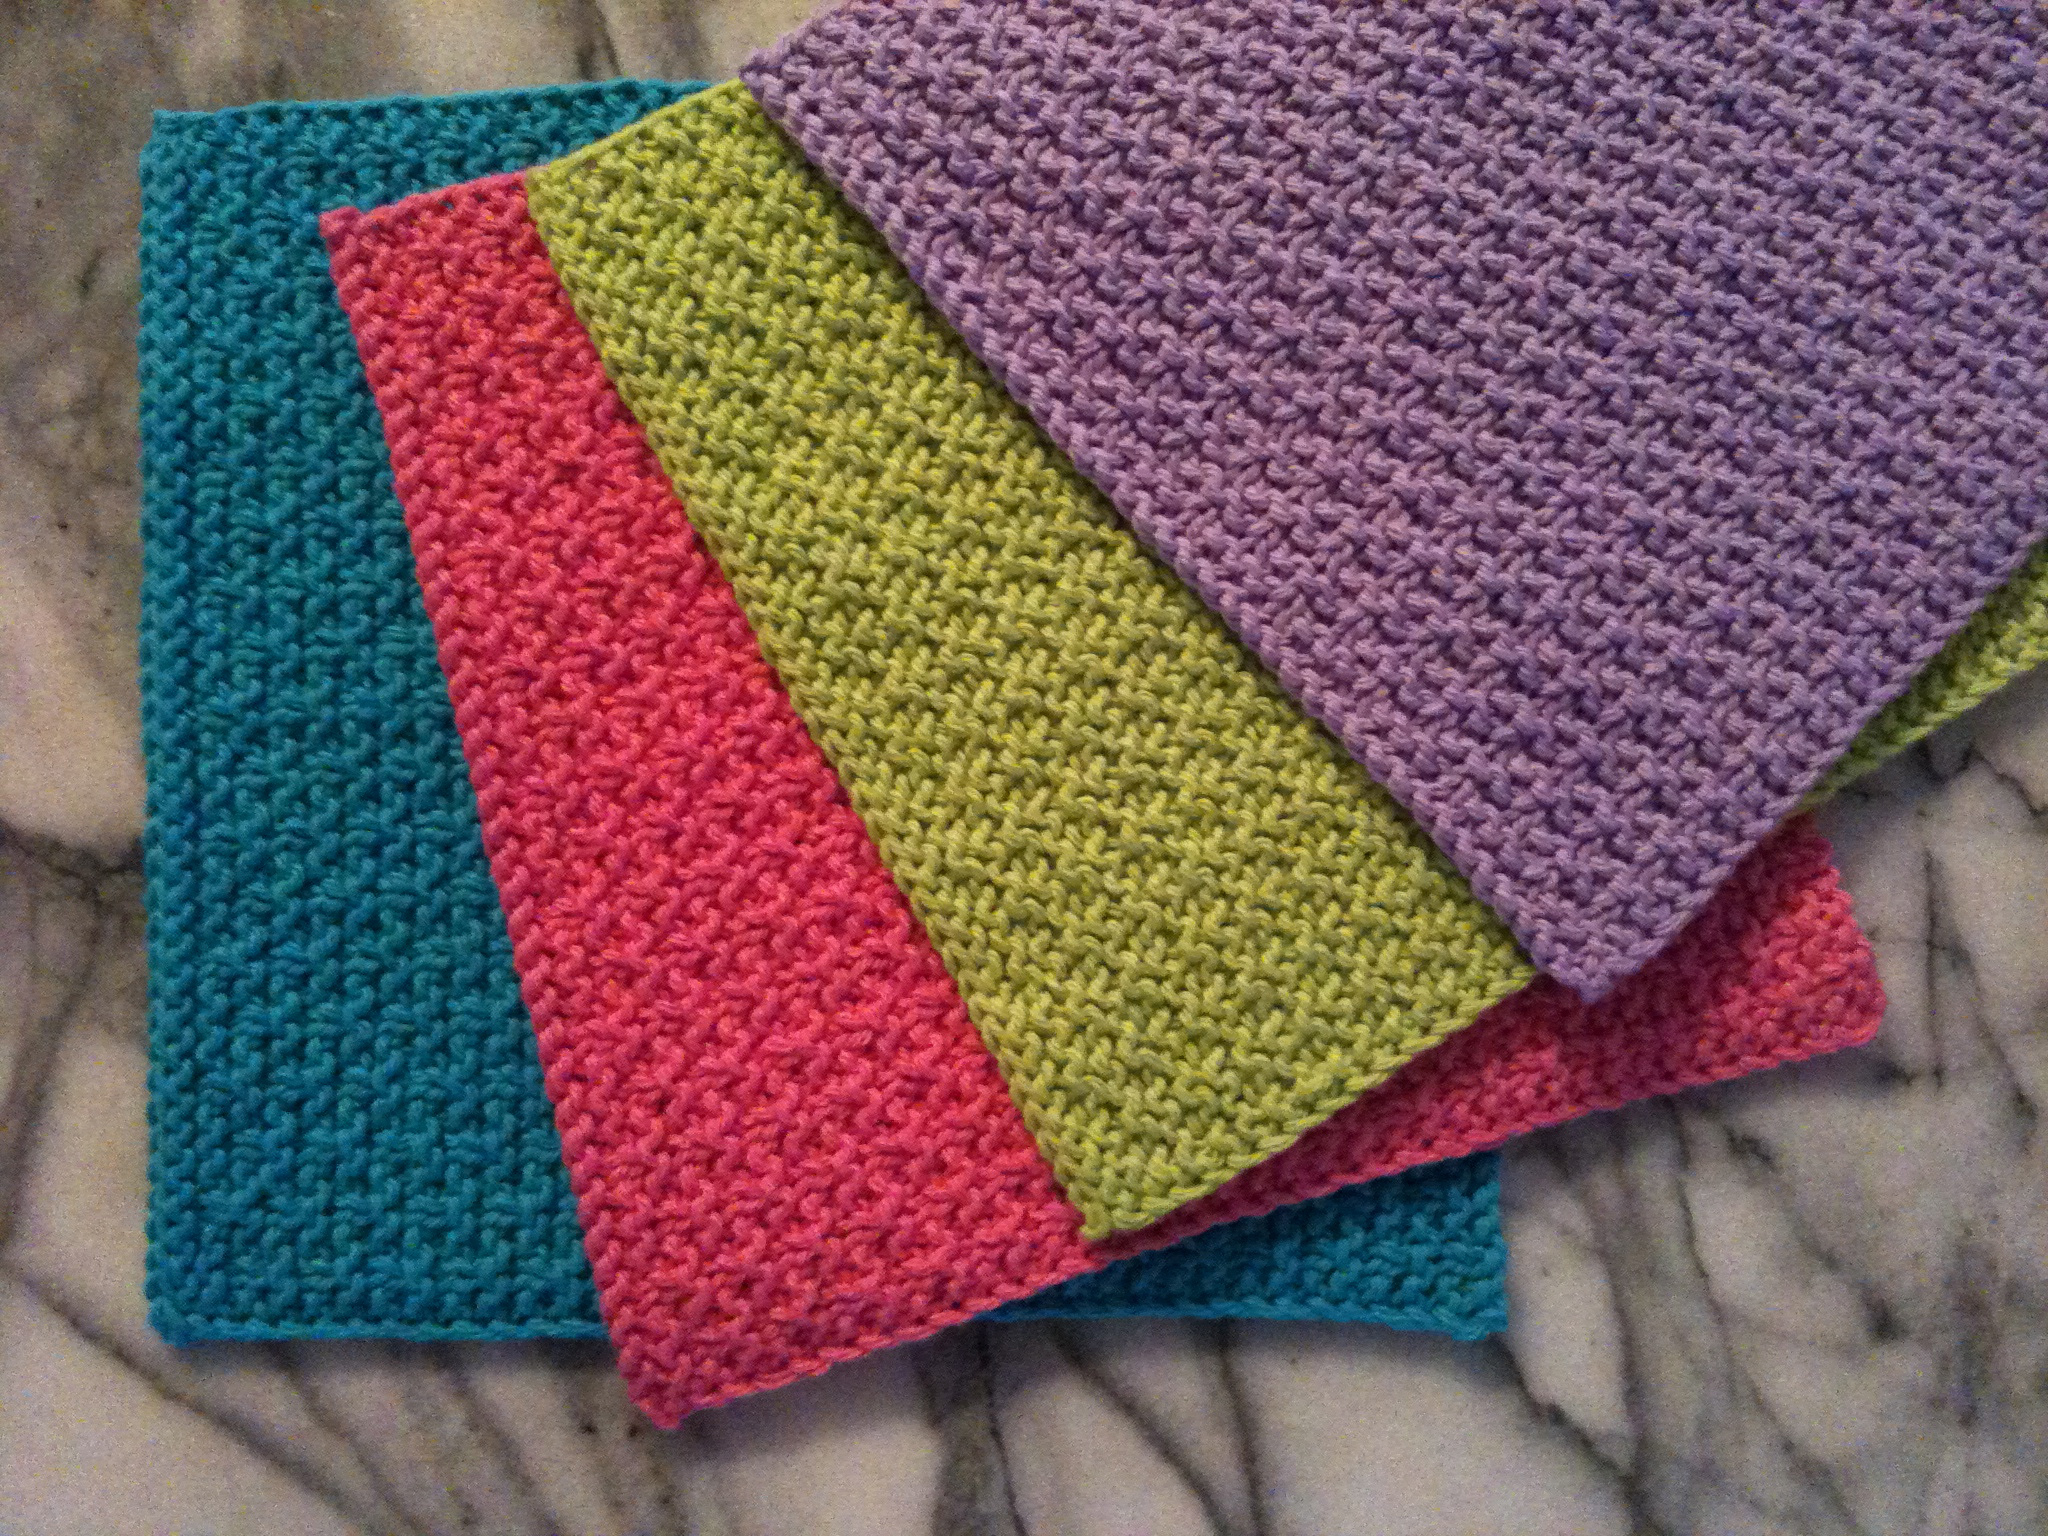 Reversible Knitting Stitch Patterns Free : Knitting Patterns Galore - Snakes and Ladders Washcloth